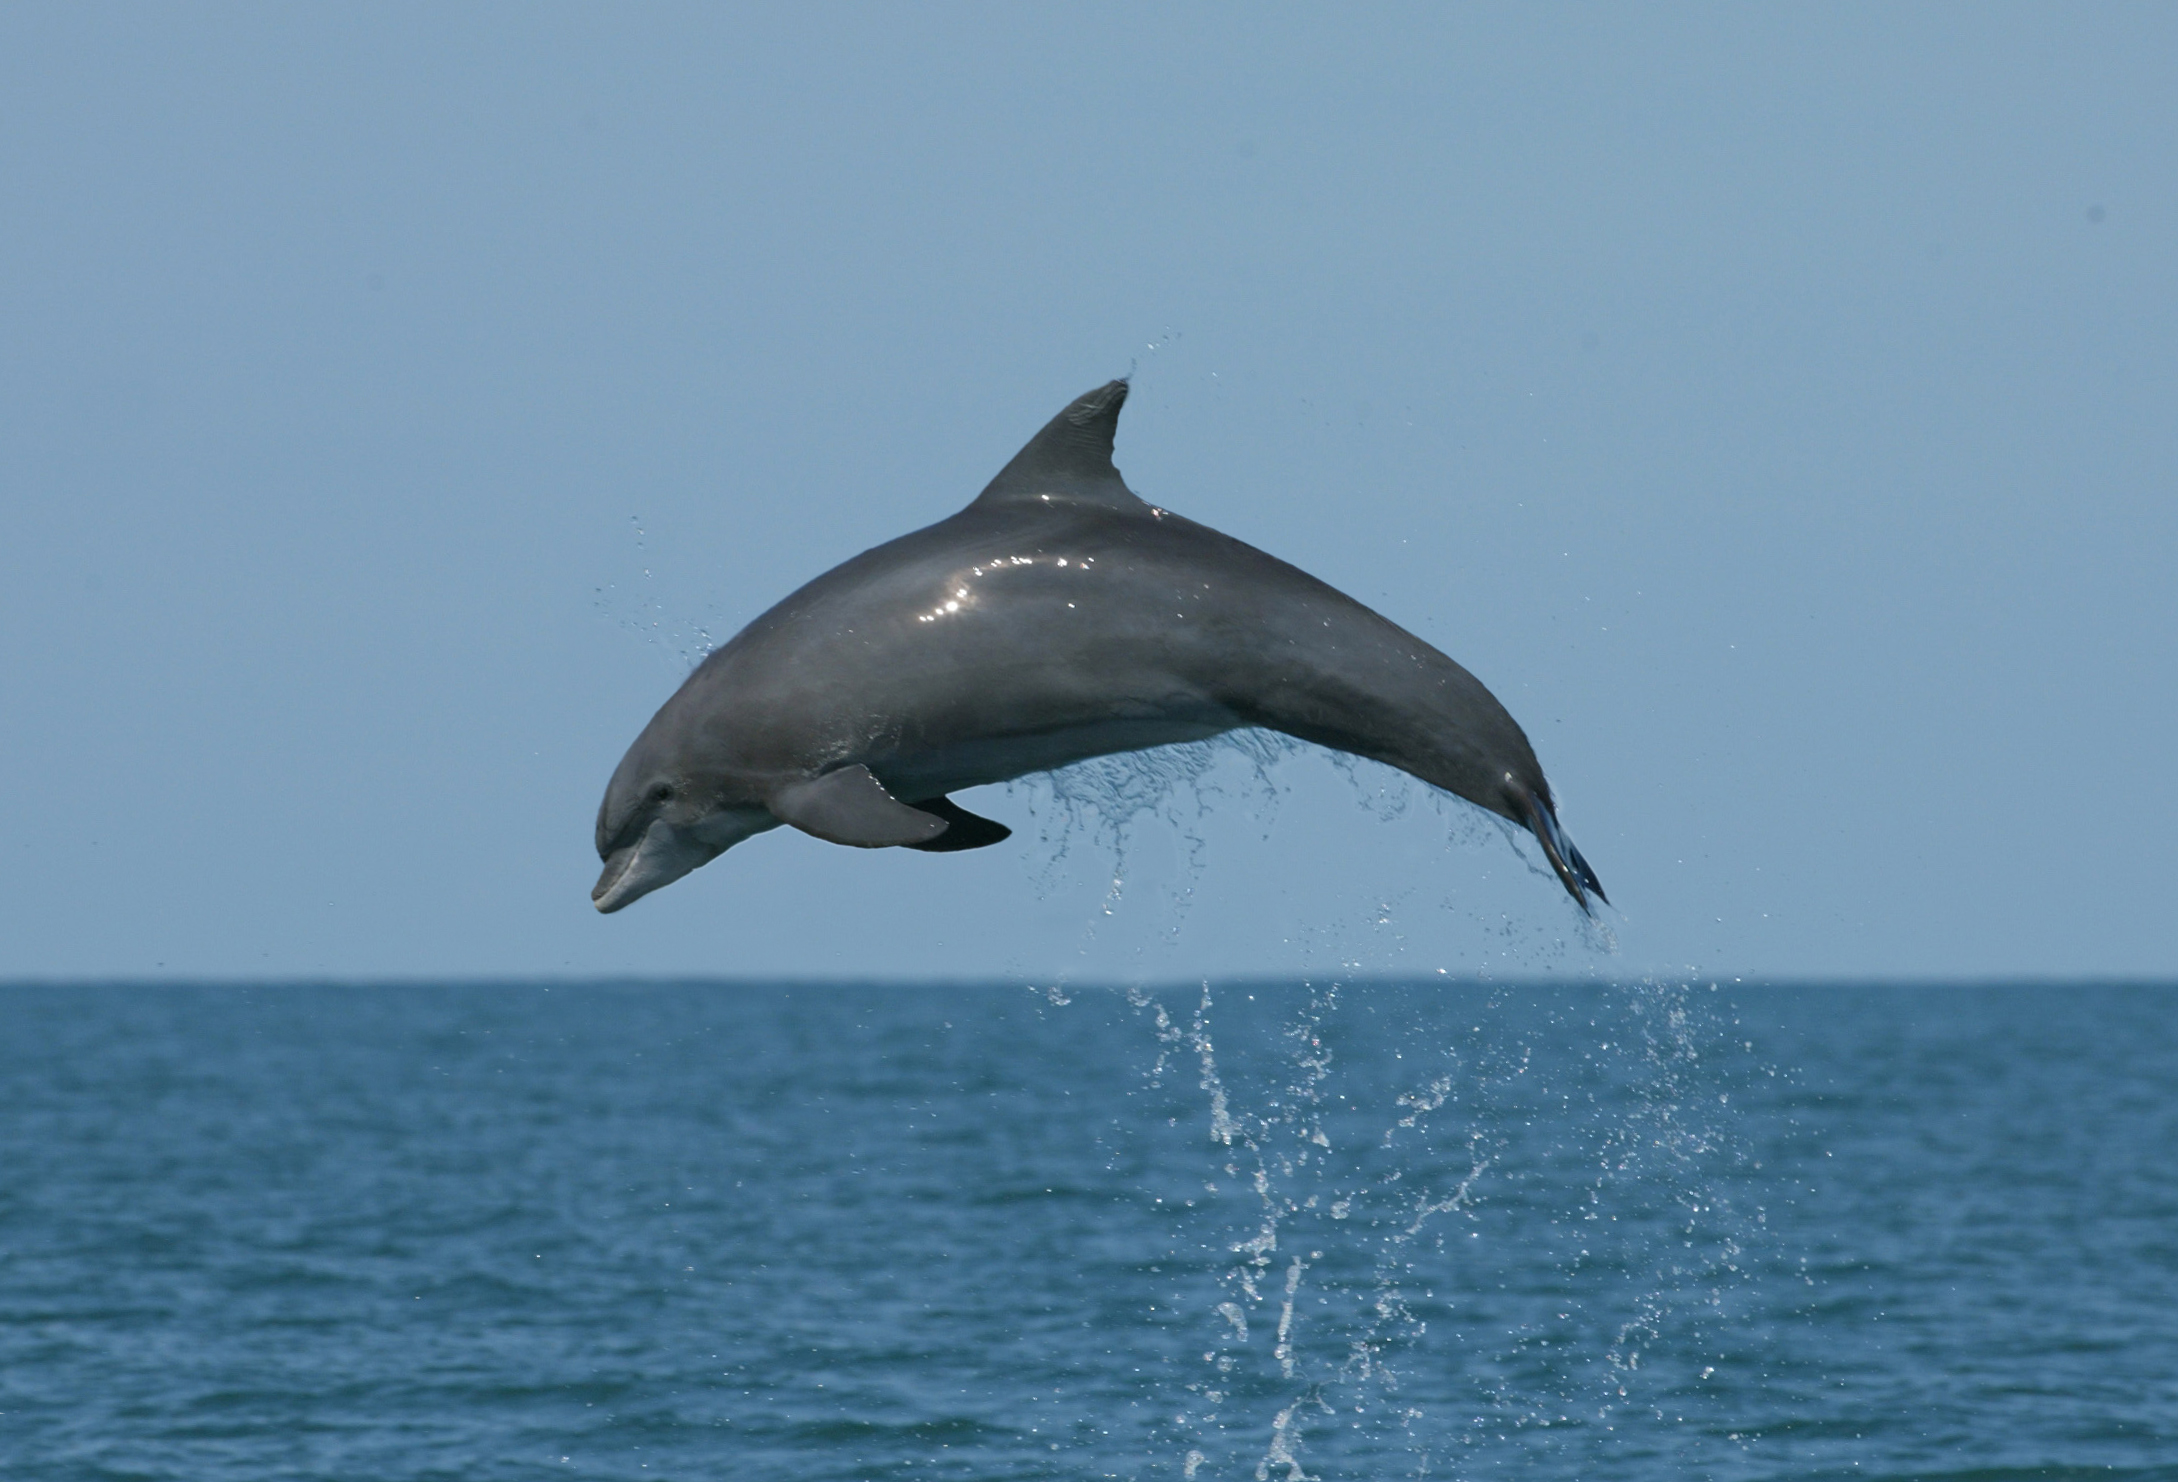 The DPMMR Journal: The Florida Keys Protect Wild Dolphins Program - Fall 2018